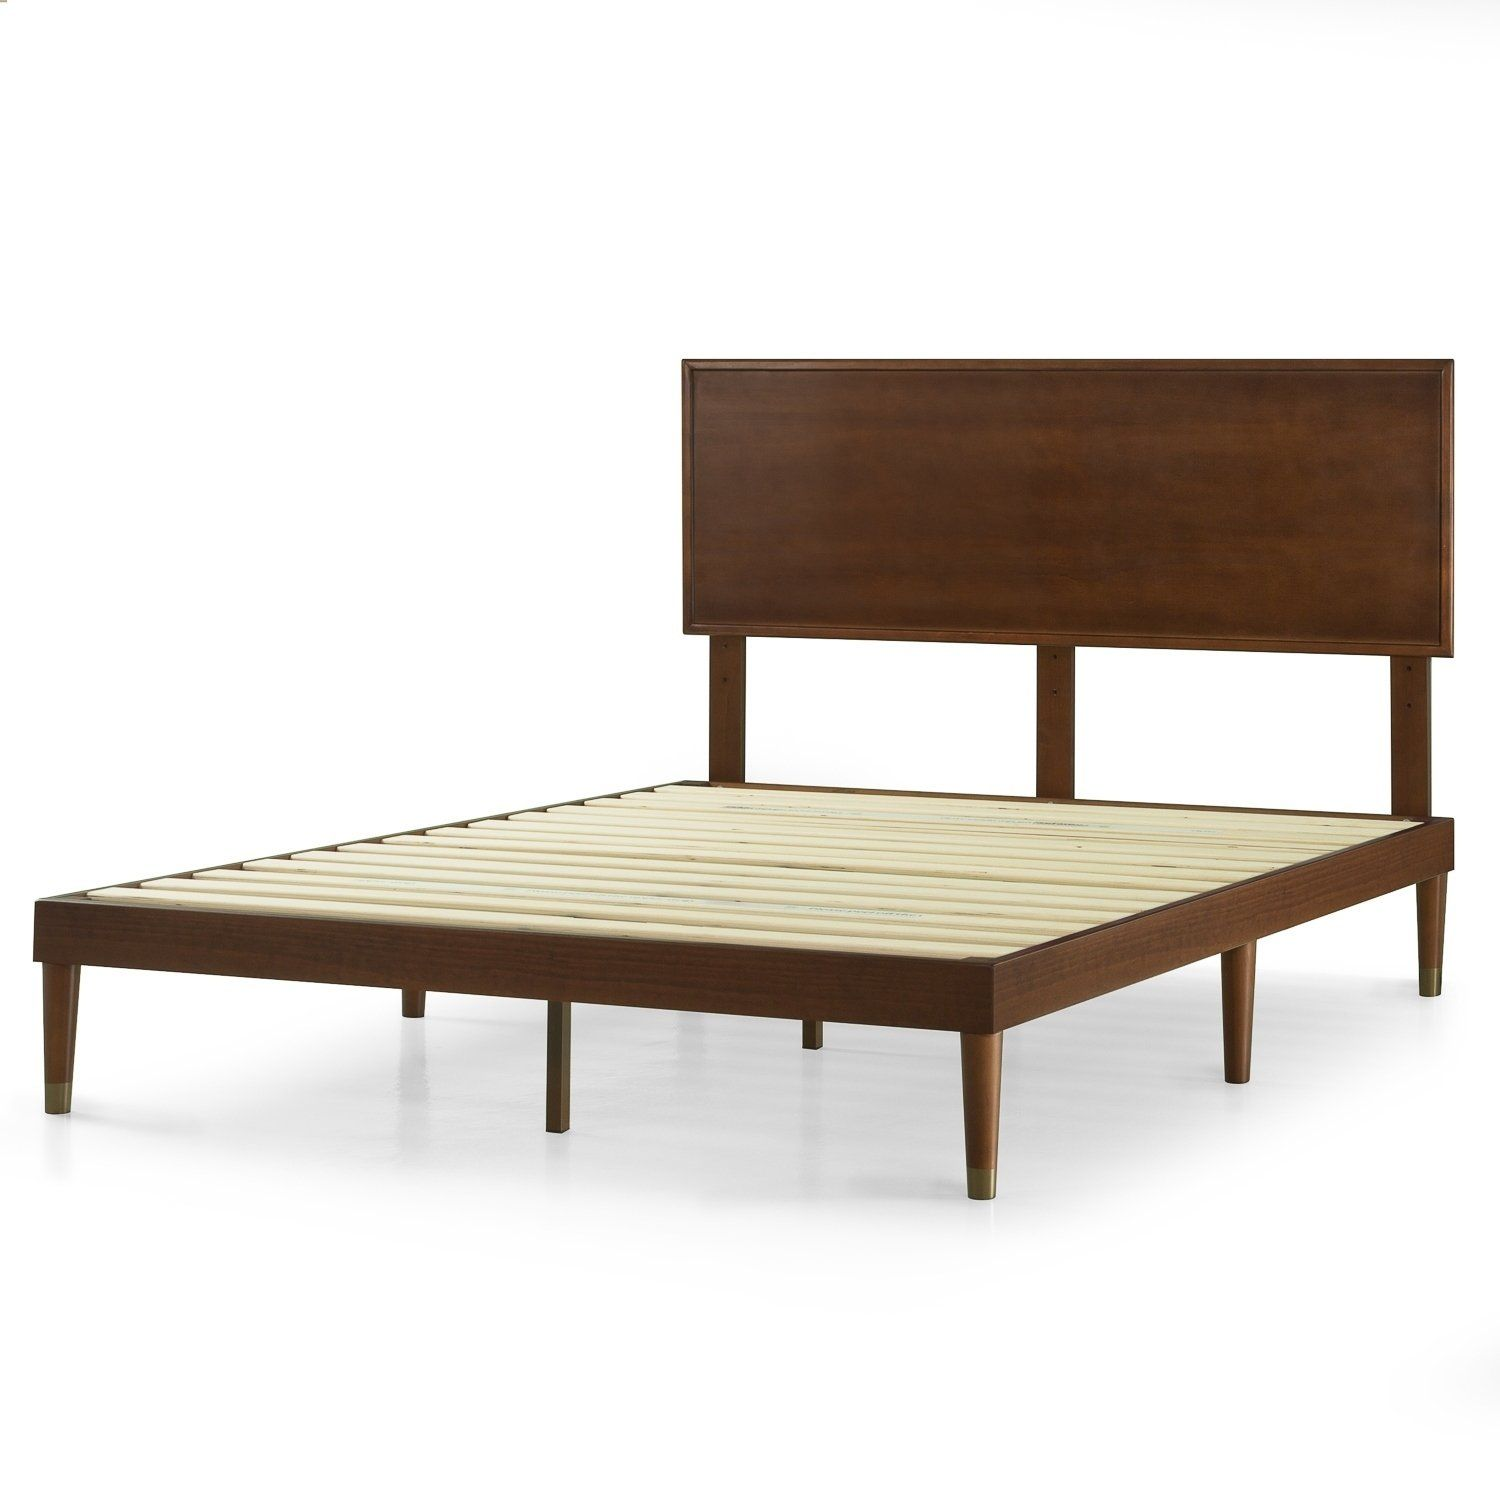 Priage By Zinus 12 Inch Deluxe Mid Century Wood Platform Bed With Headboard Wood Platform Bed Headboards For Beds